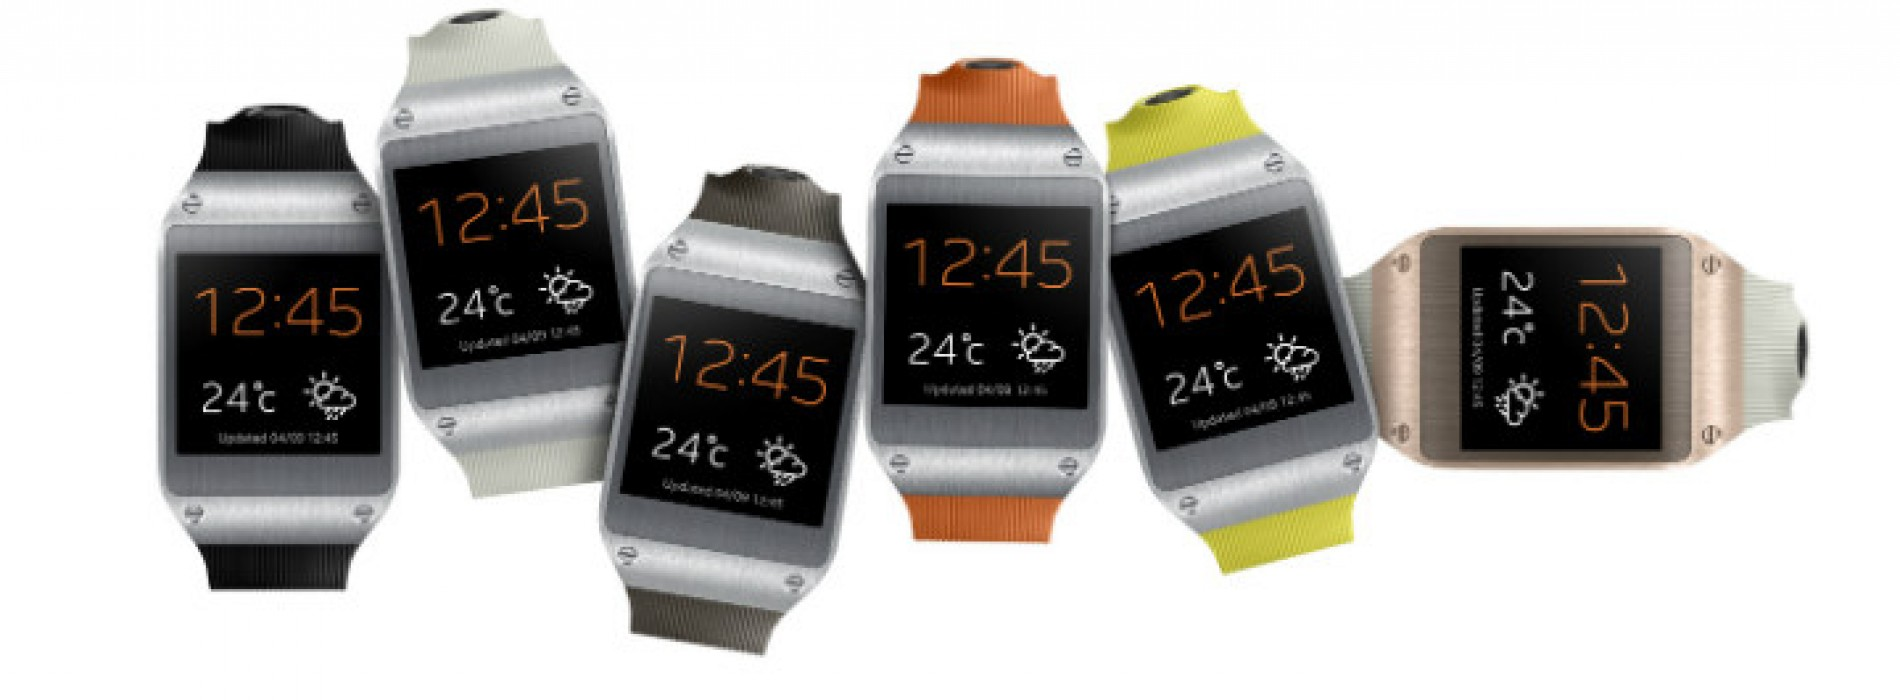 Samsung Galaxy Gear announced for September 25